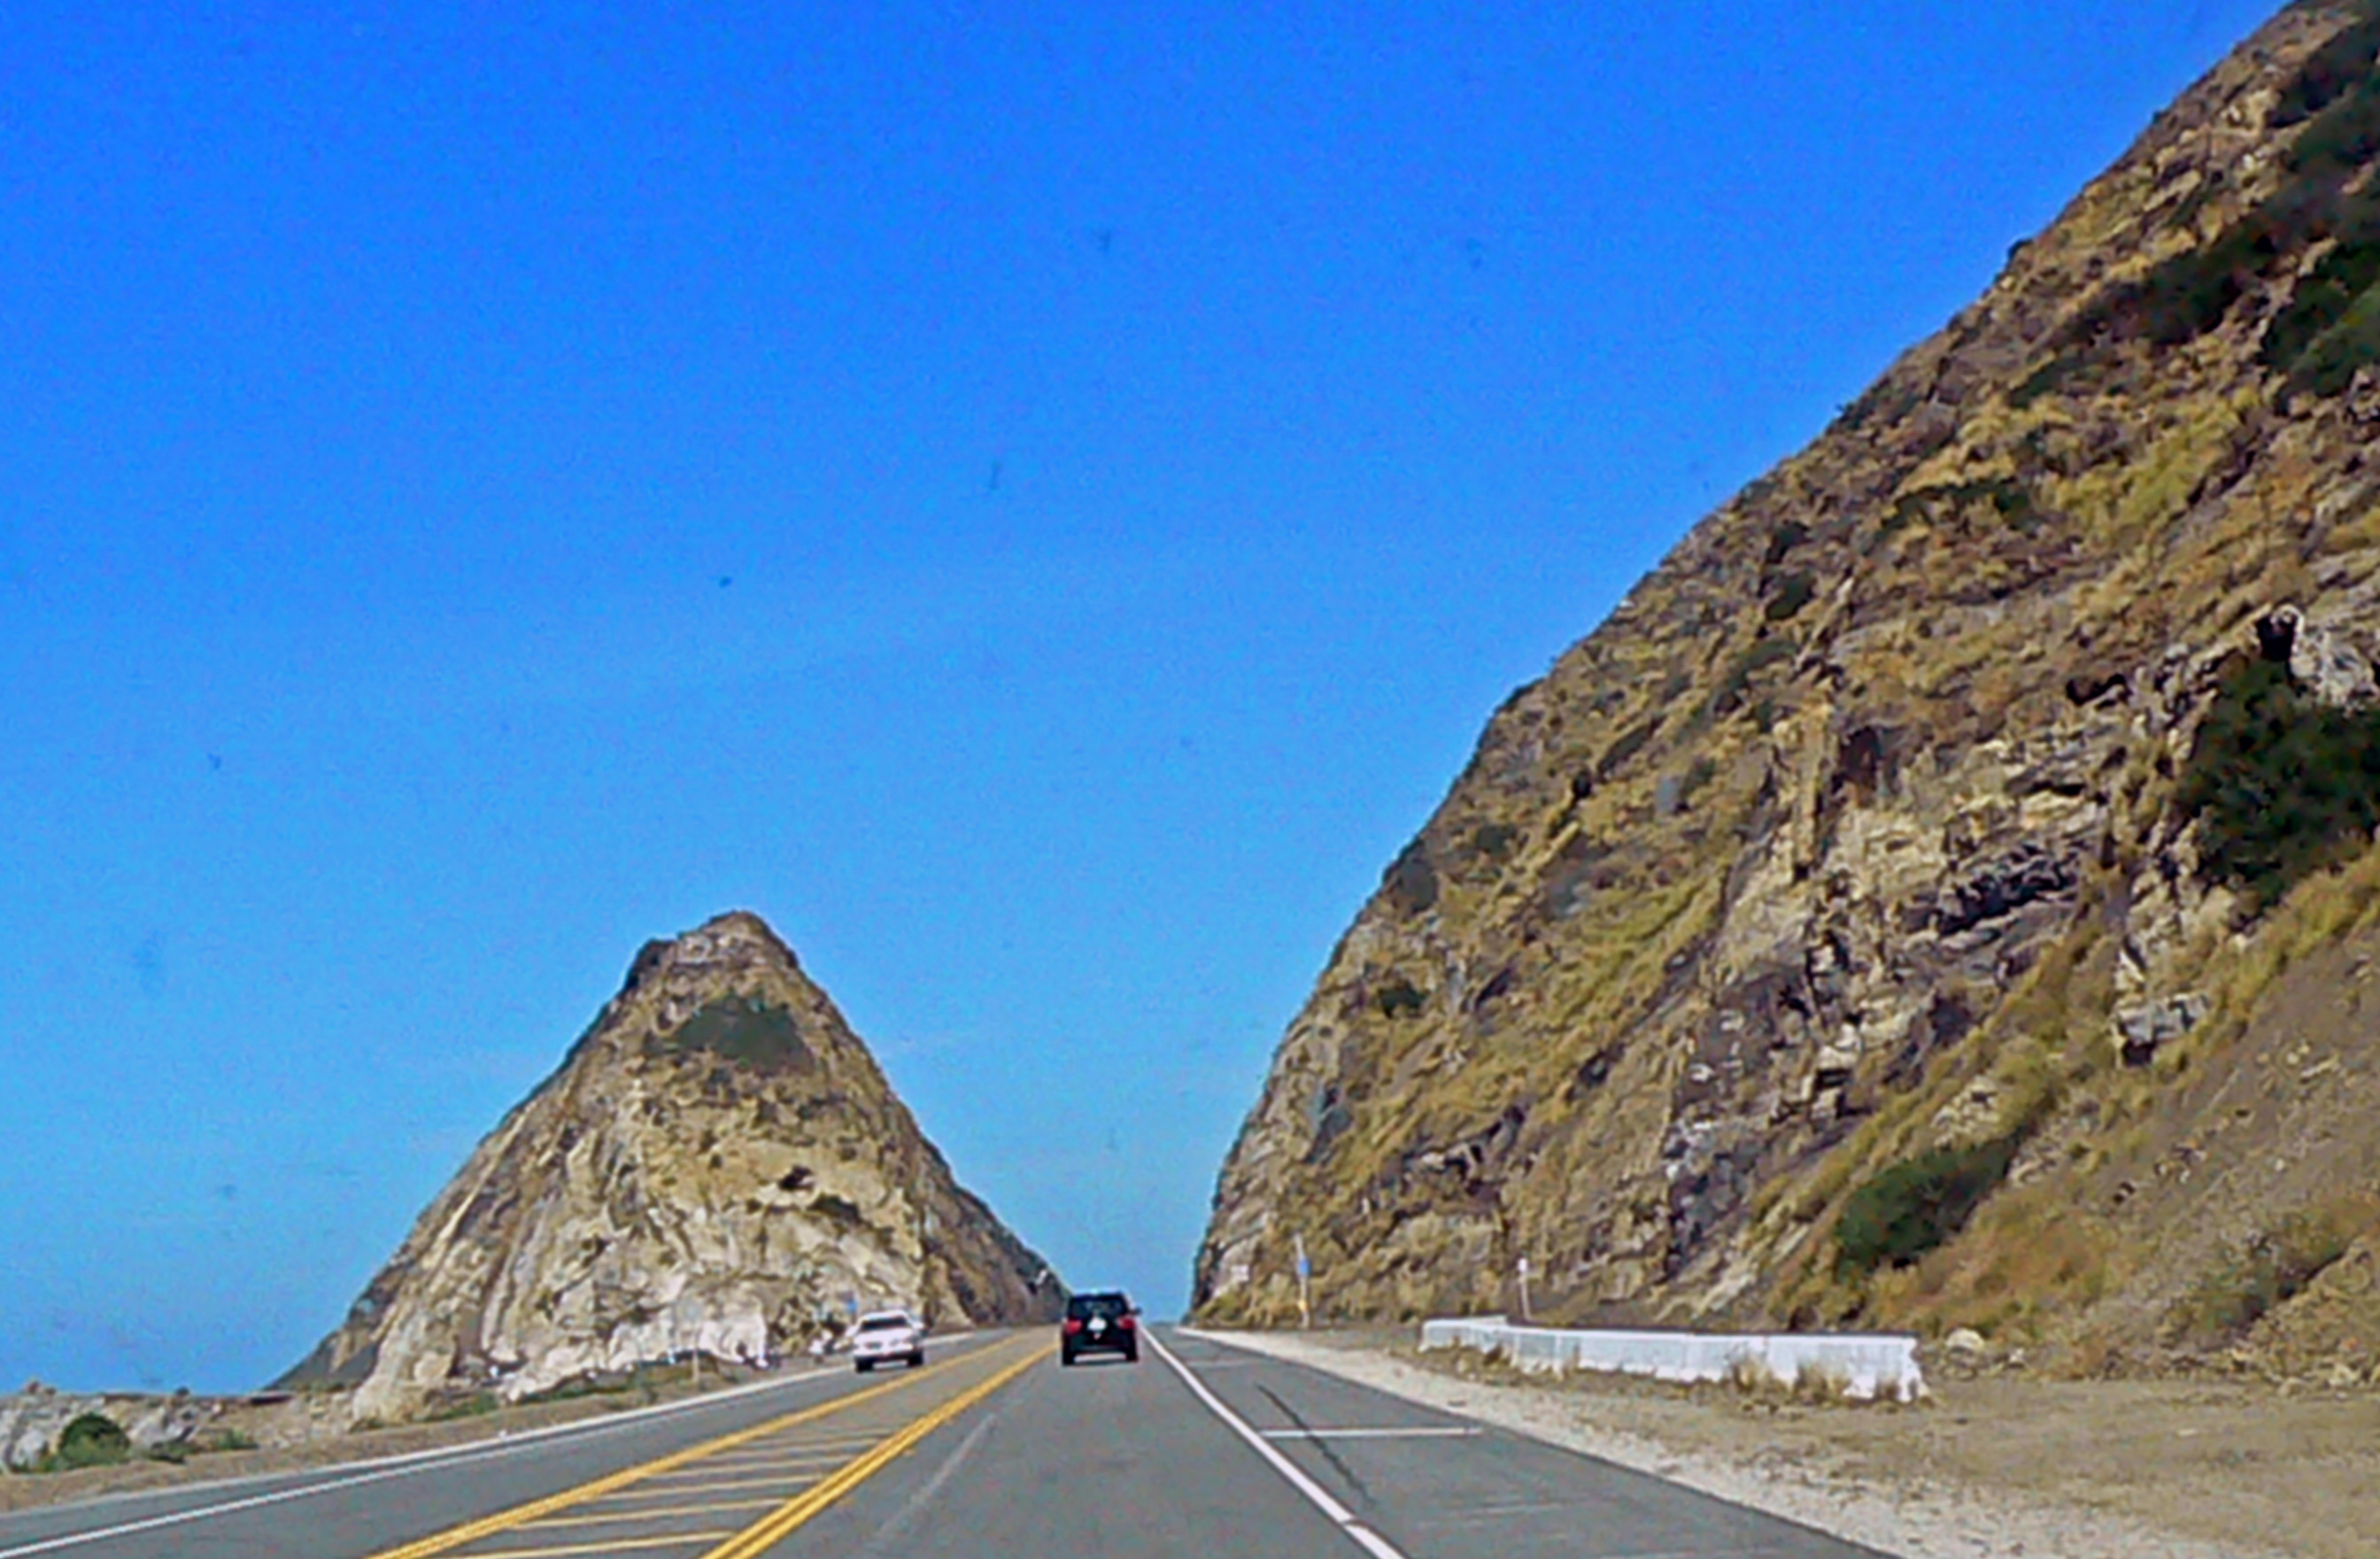 May 27 and 28, the Pacific Coast Highway will be closed intermittently from 6 a.m. to 8 p.m. for rock-slide prevention work